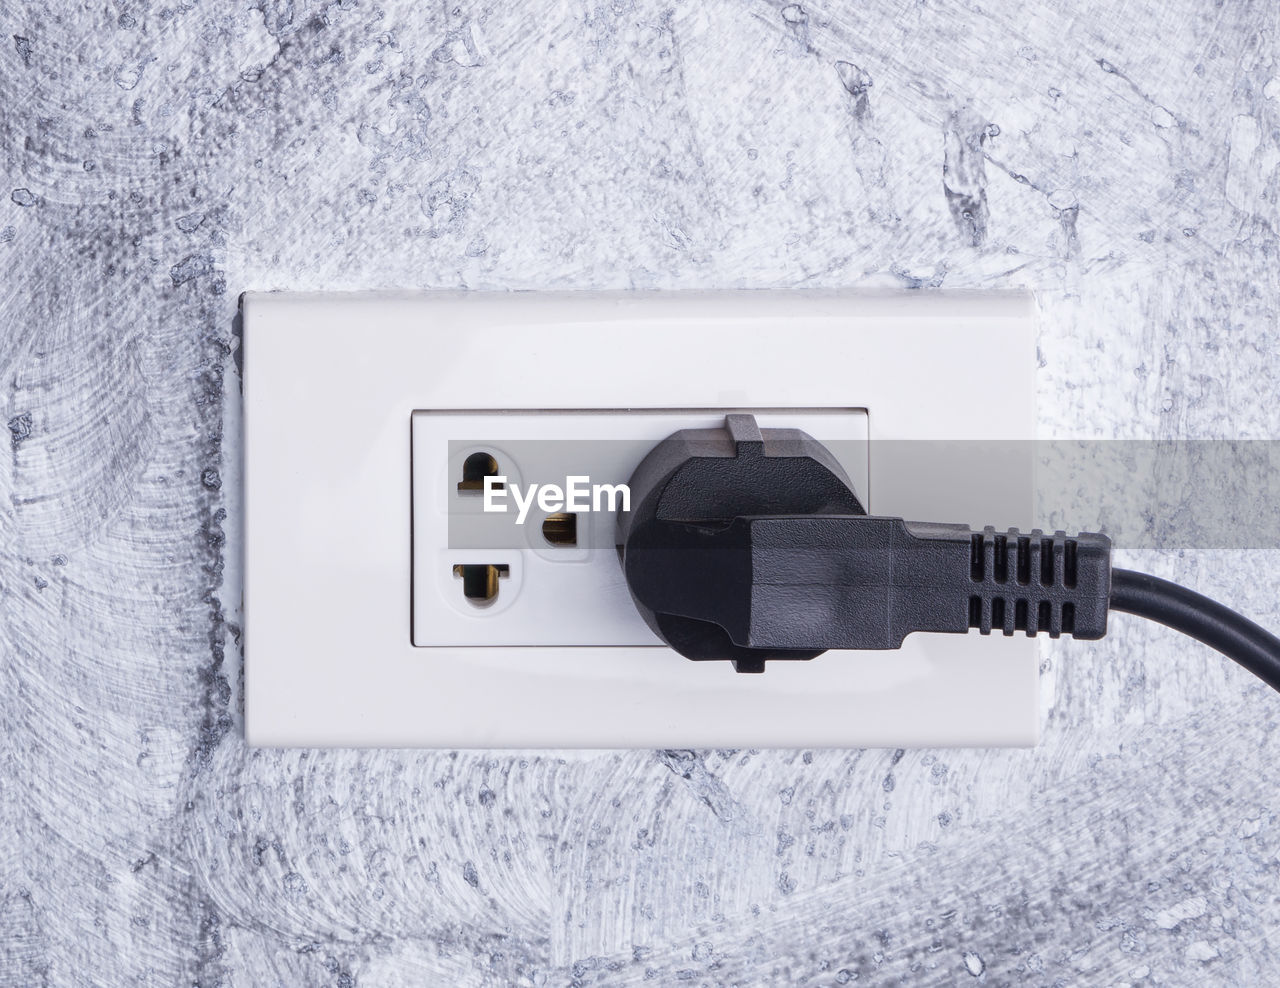 technology, cable, connection, electricity, close-up, electric plug, white color, no people, communication, cold temperature, winter, wall - building feature, snow, outlet, control, fuel and power generation, day, outdoors, power supply, electrical equipment, electrical component